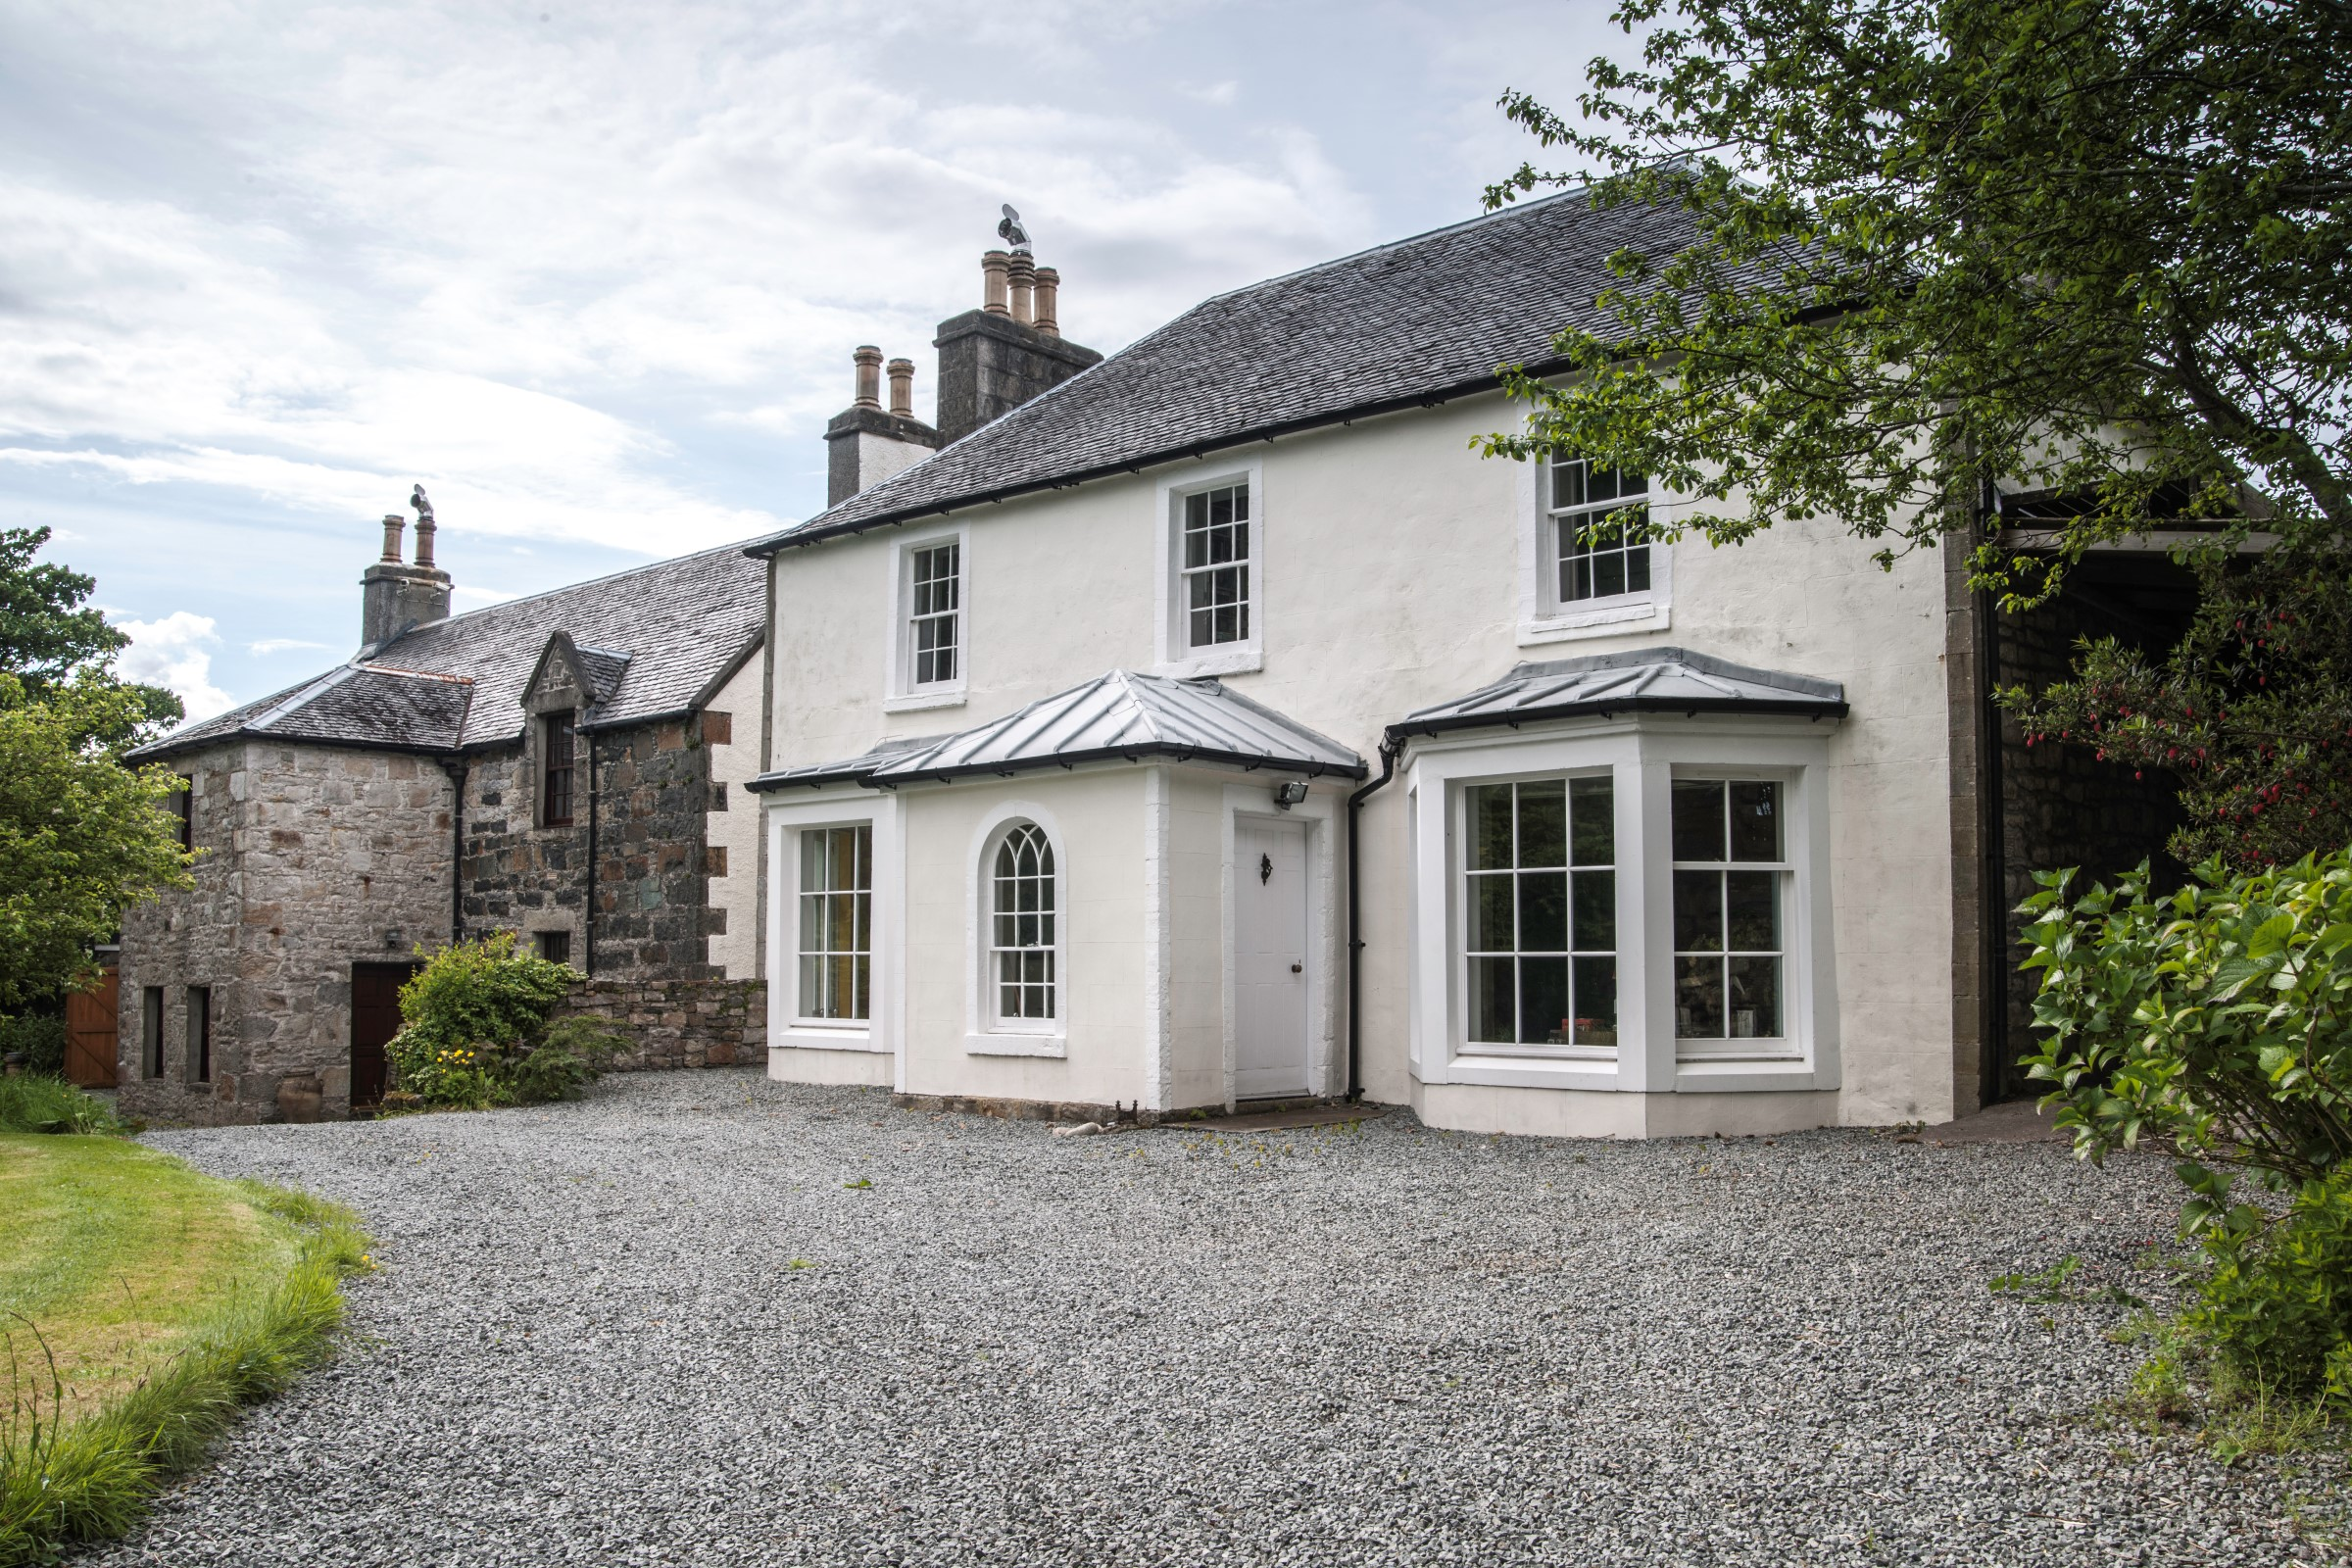 Single Family Home for Sale at Isle of Skye, Scotland Strathaird House Strathaird Other Scotland, Scotland, IV499AX United Kingdom